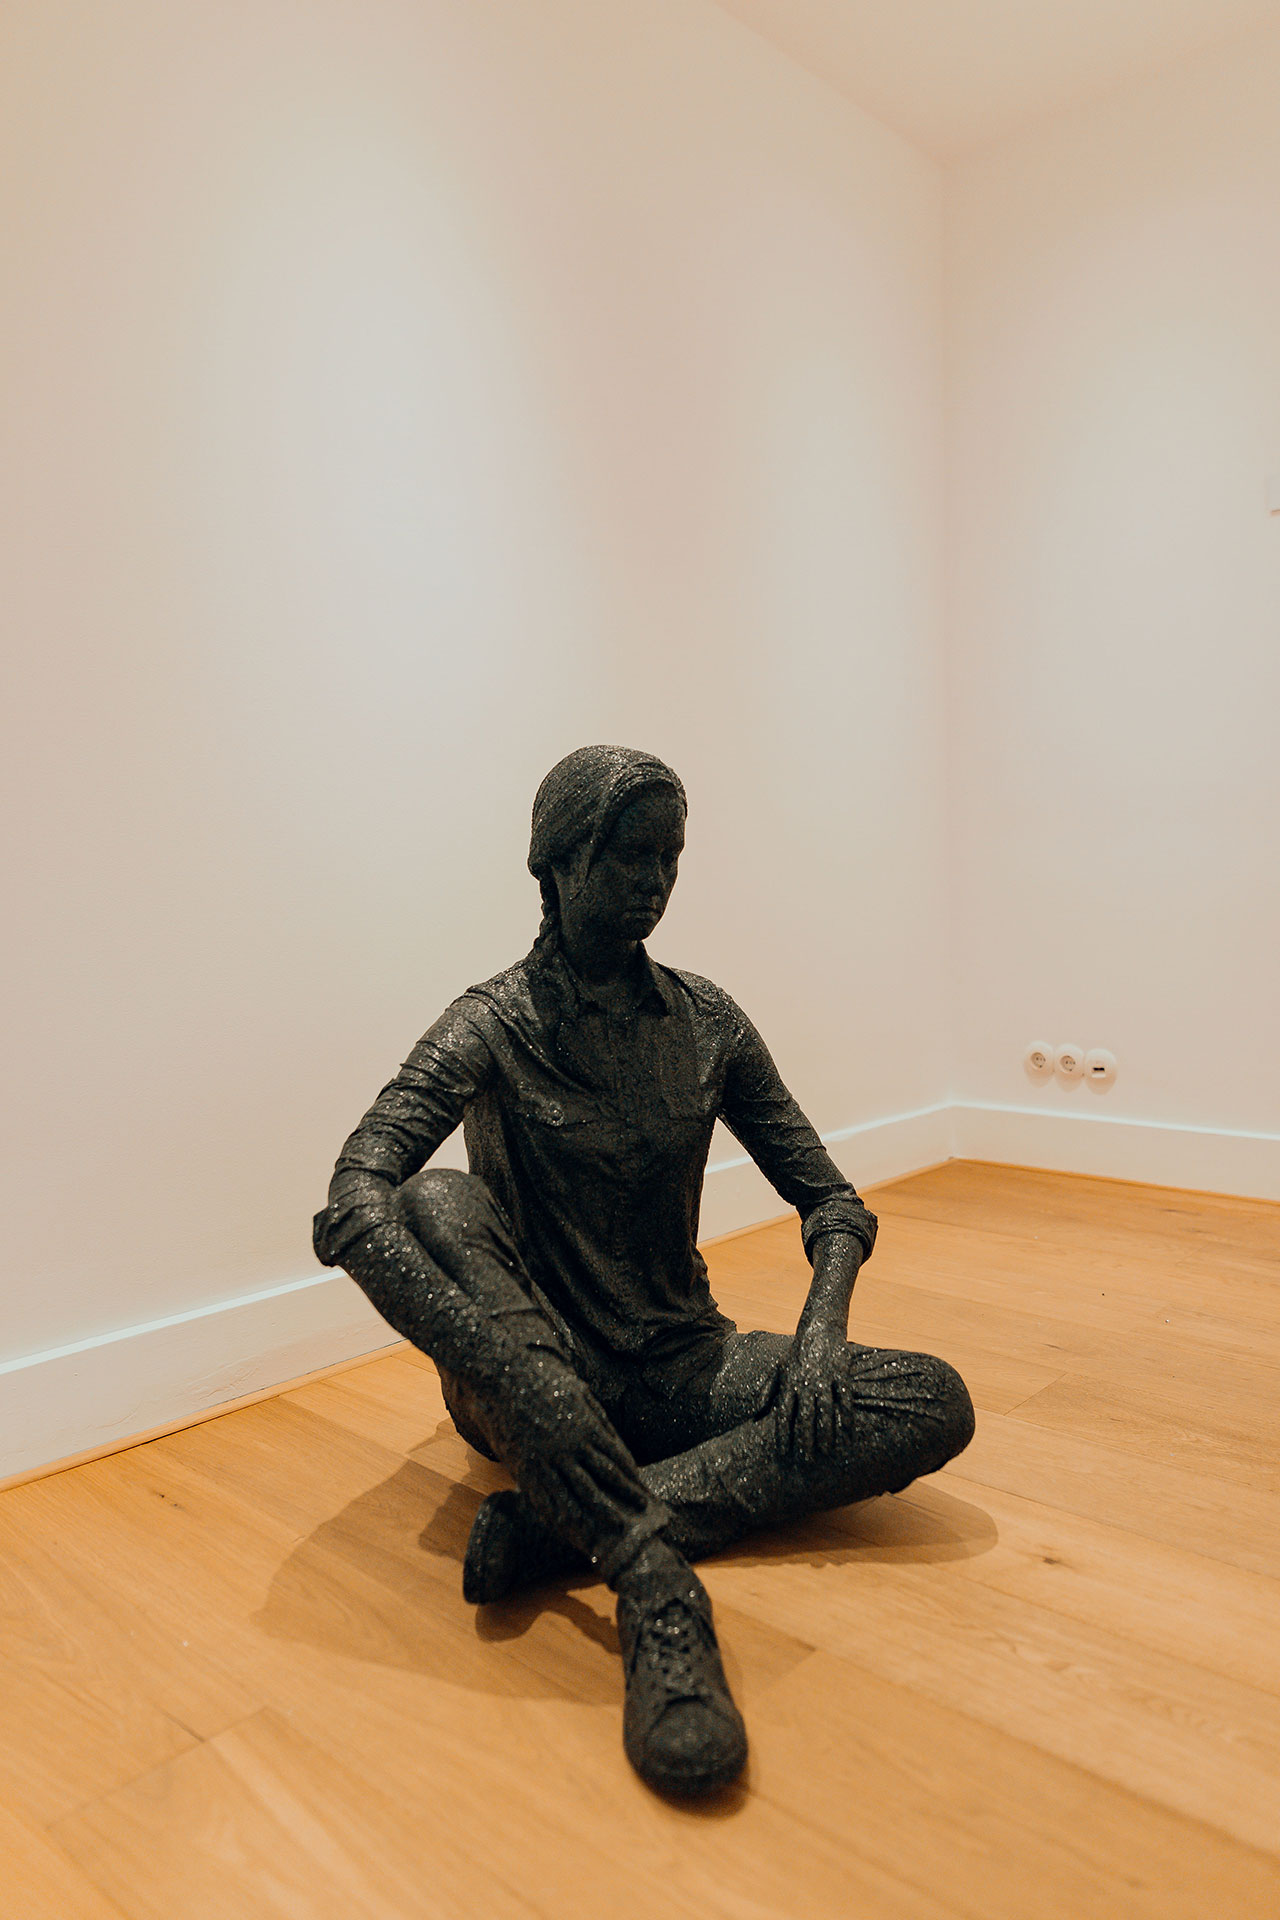 Daniel Arsham, Seated Female Figure​. Exhibition view at Moco Museum in Amsterdam. Photo by Isabel Janssen.